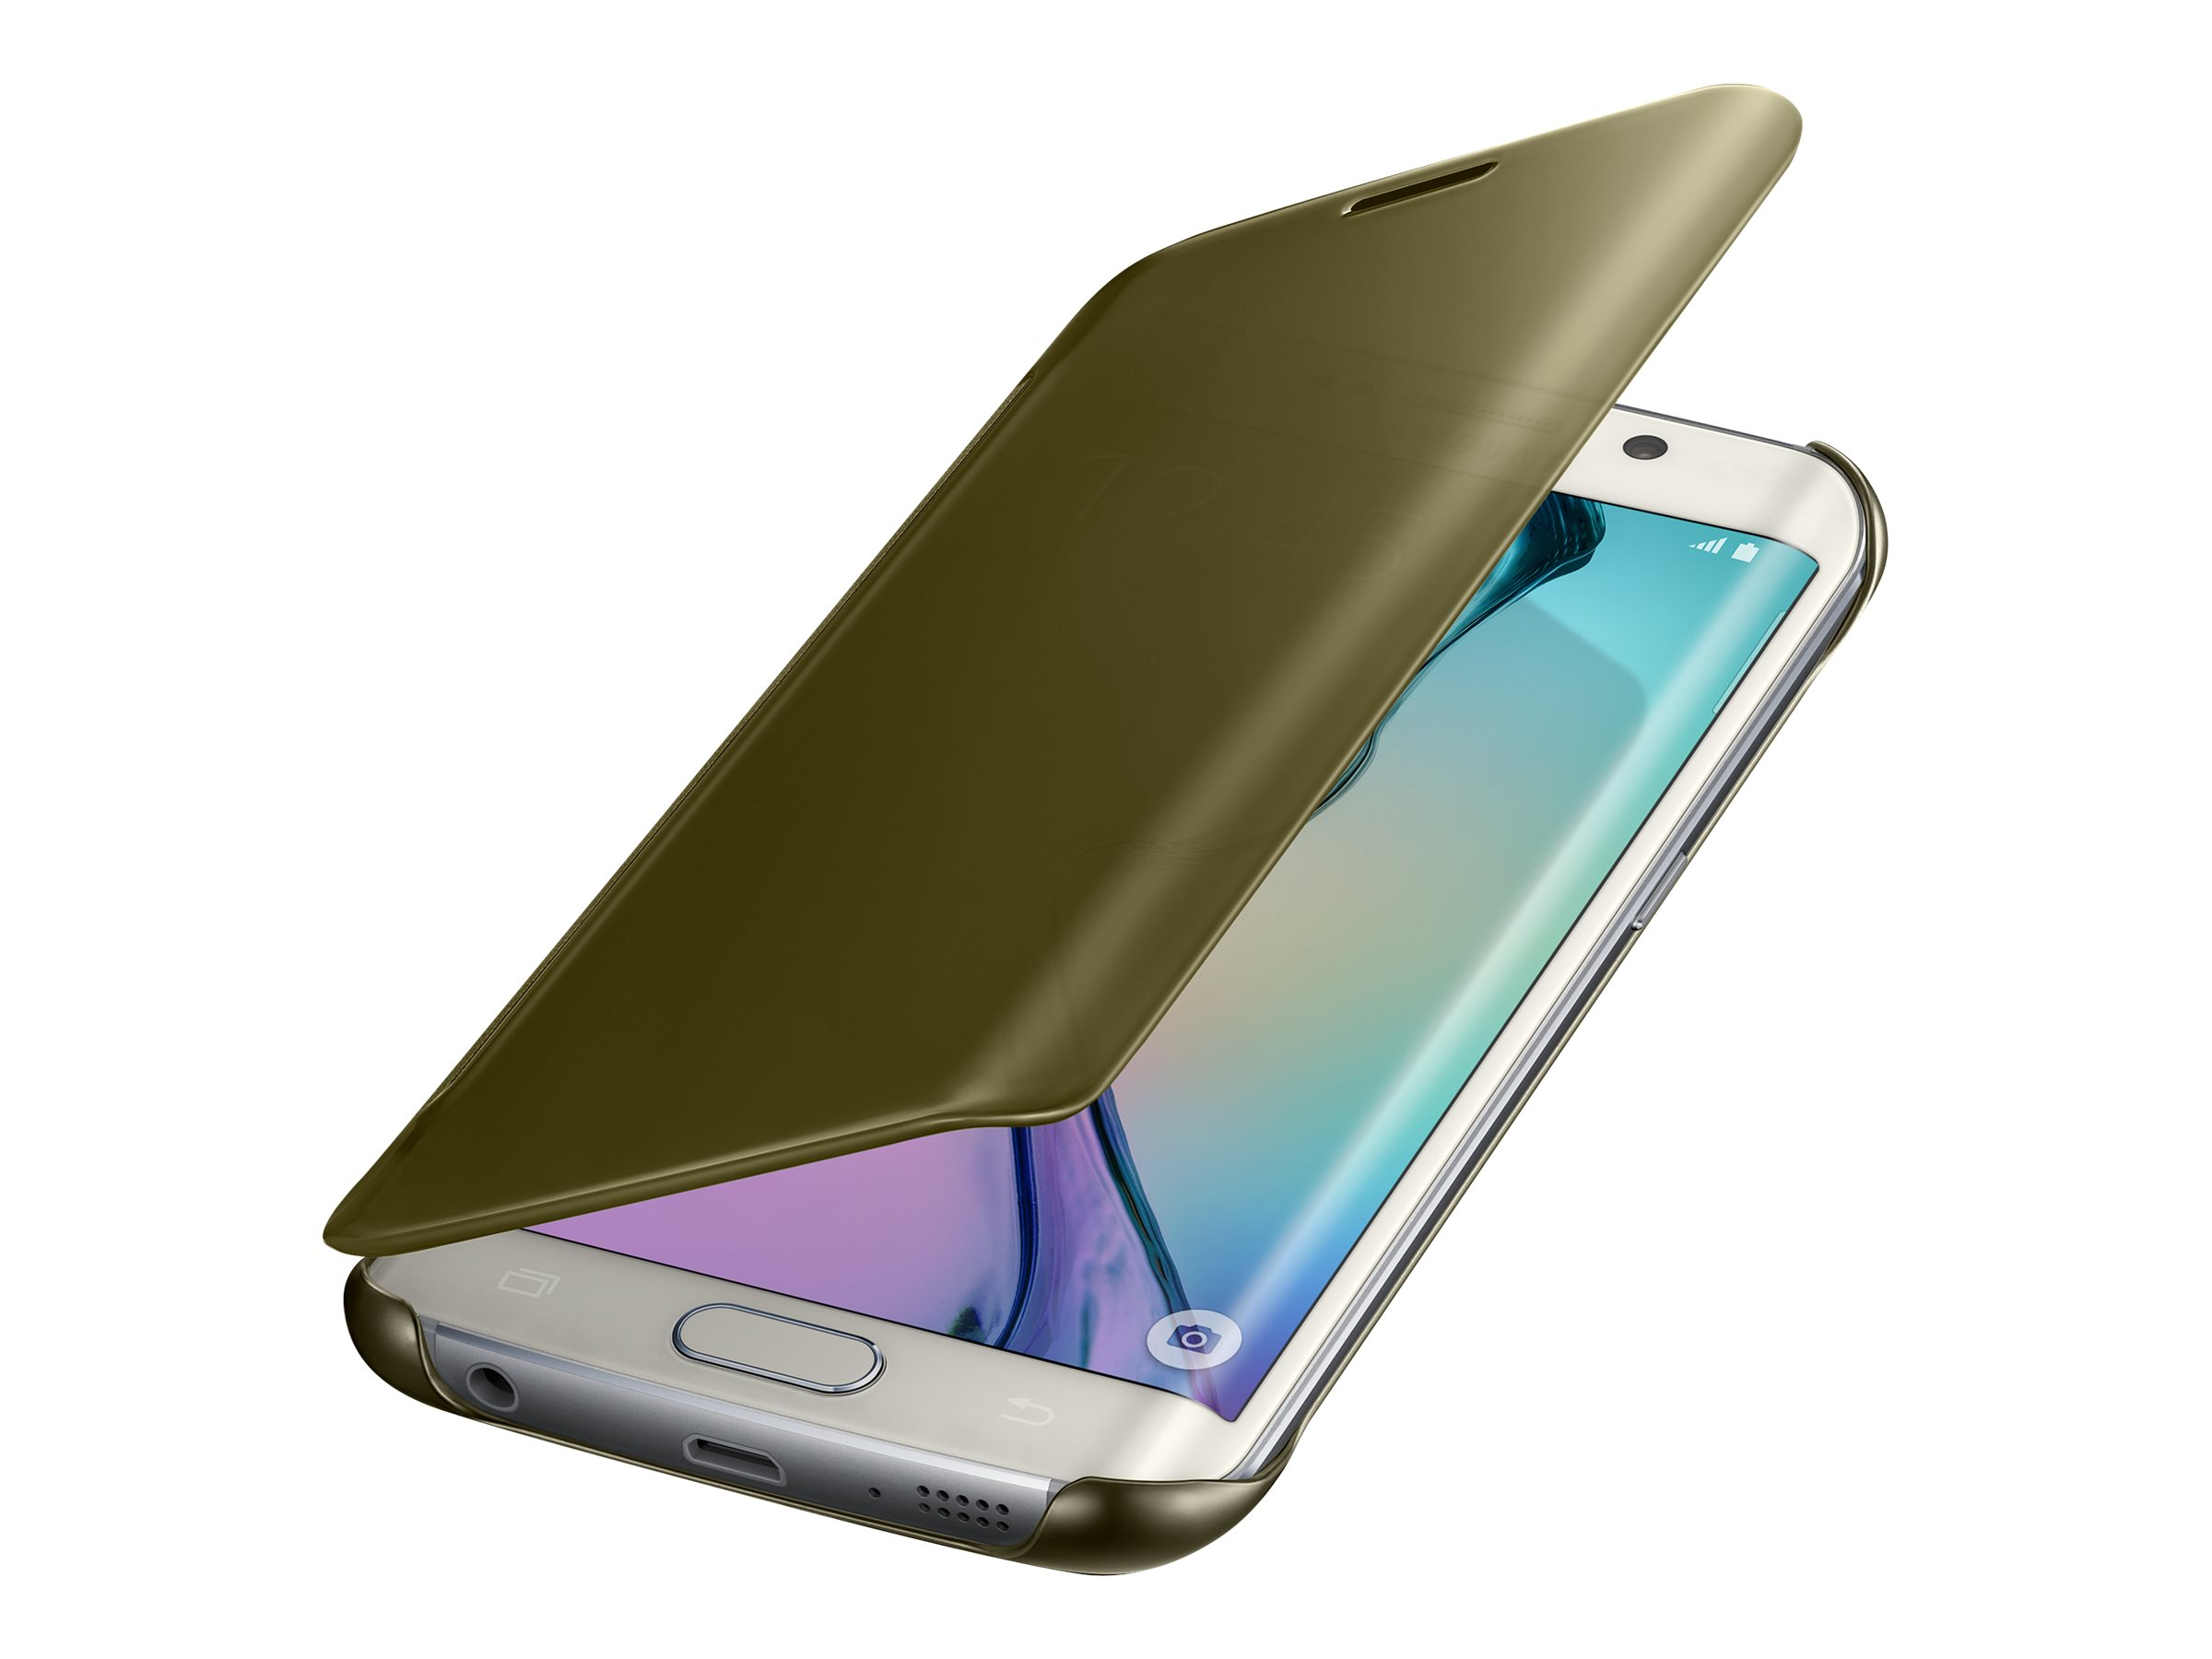 Samsung Clear View Cover EF-ZG925B - Protection à rabat pour Galaxy S6 edge - différents coloris